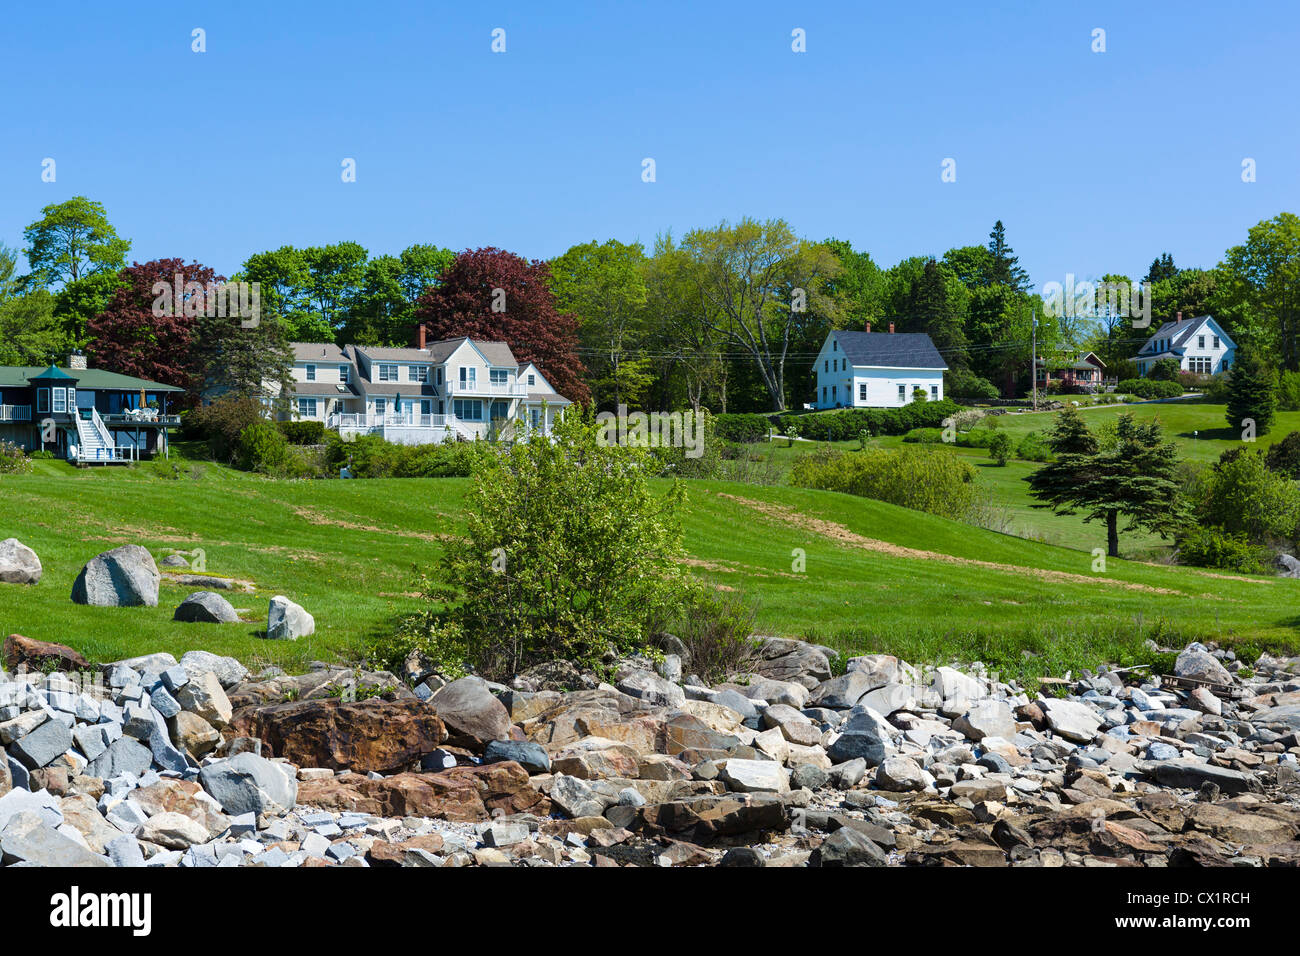 Houses in the village of Tenants Harbor on St George Peninsula, Knox County, Maine, USA - Stock Image